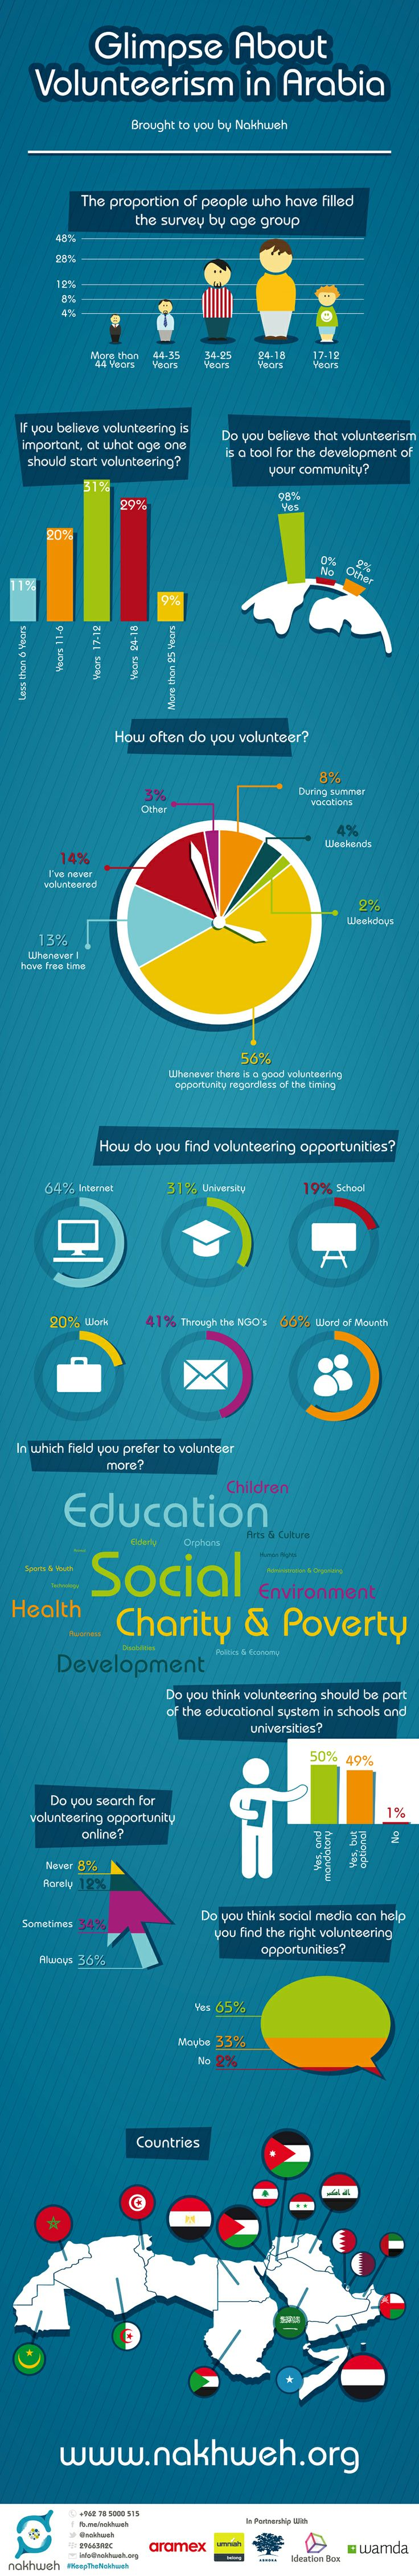 fundraising infographic : Glimpse about #volunteerism in Arabia…